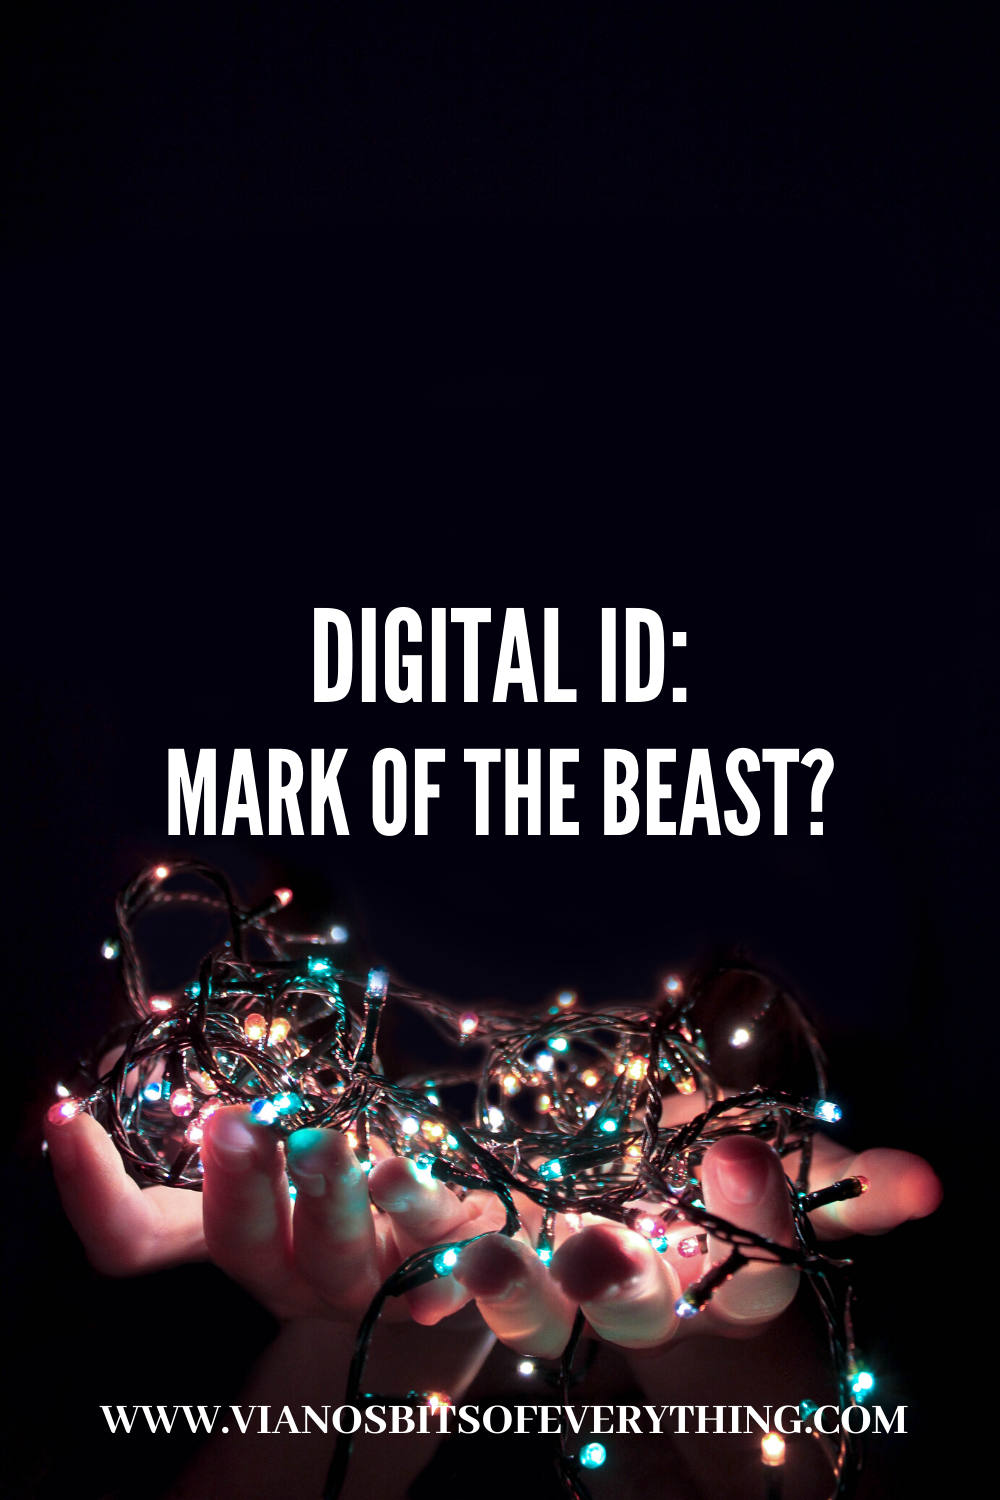 Digital ID: Mark Of The Beast?